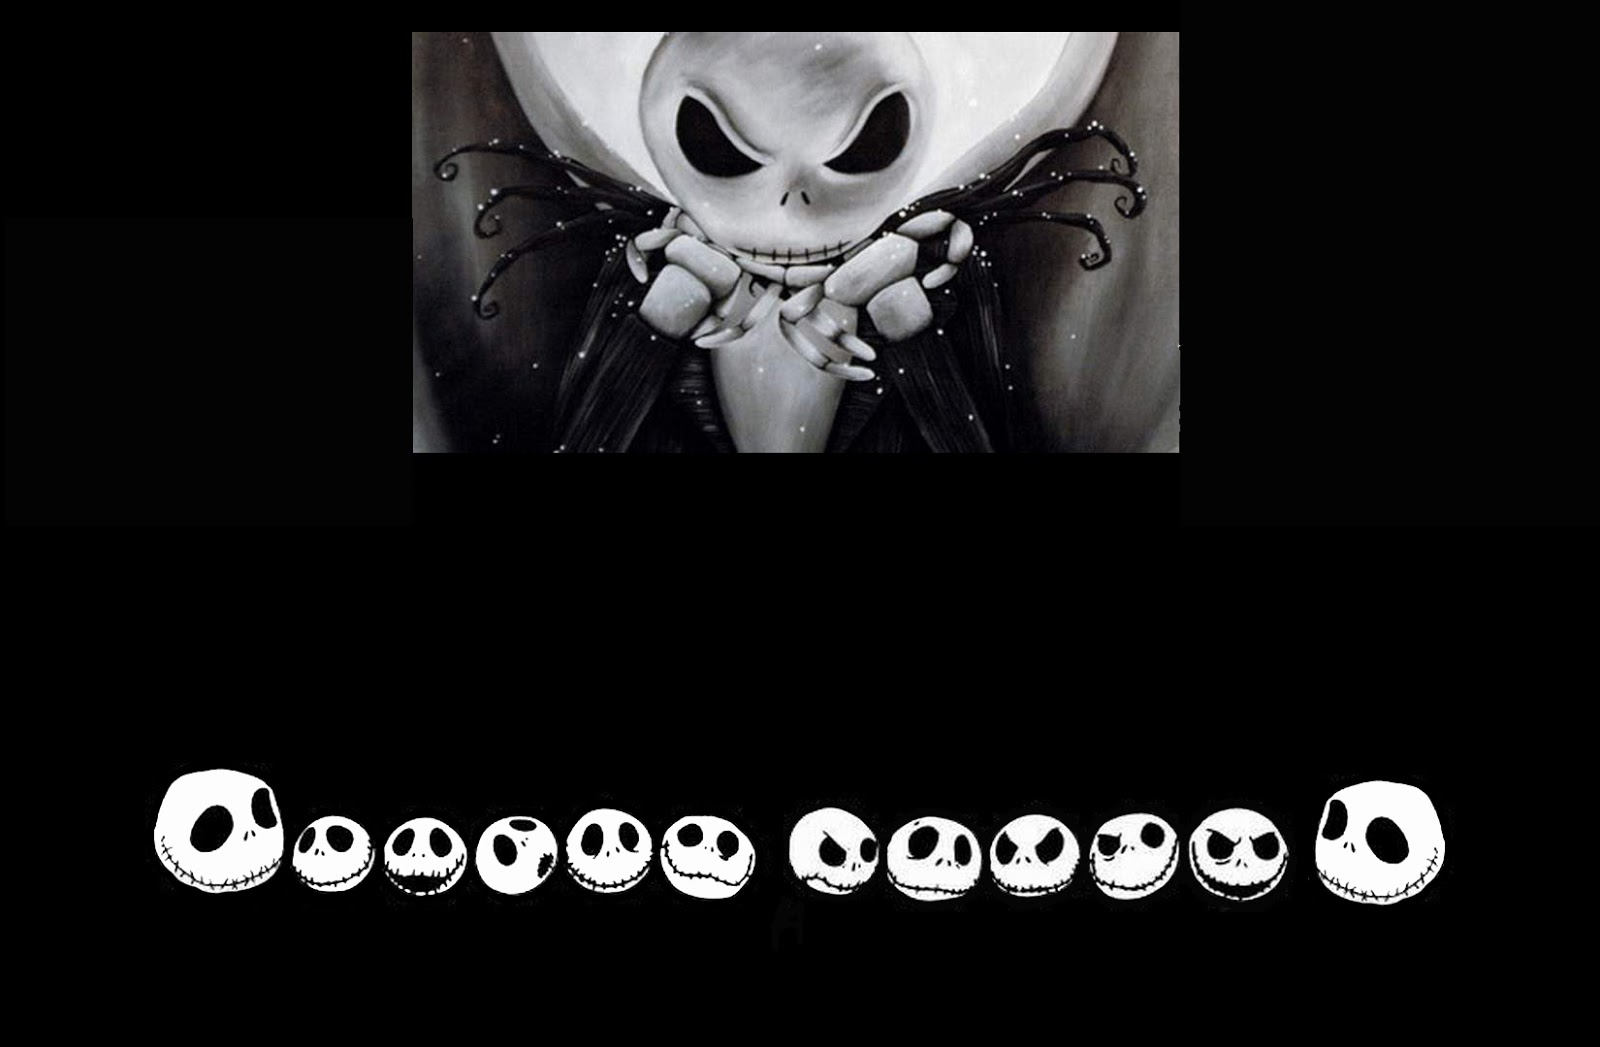 Book Reviews and More: Some Old Nightmare Before Christmas Desktop ...